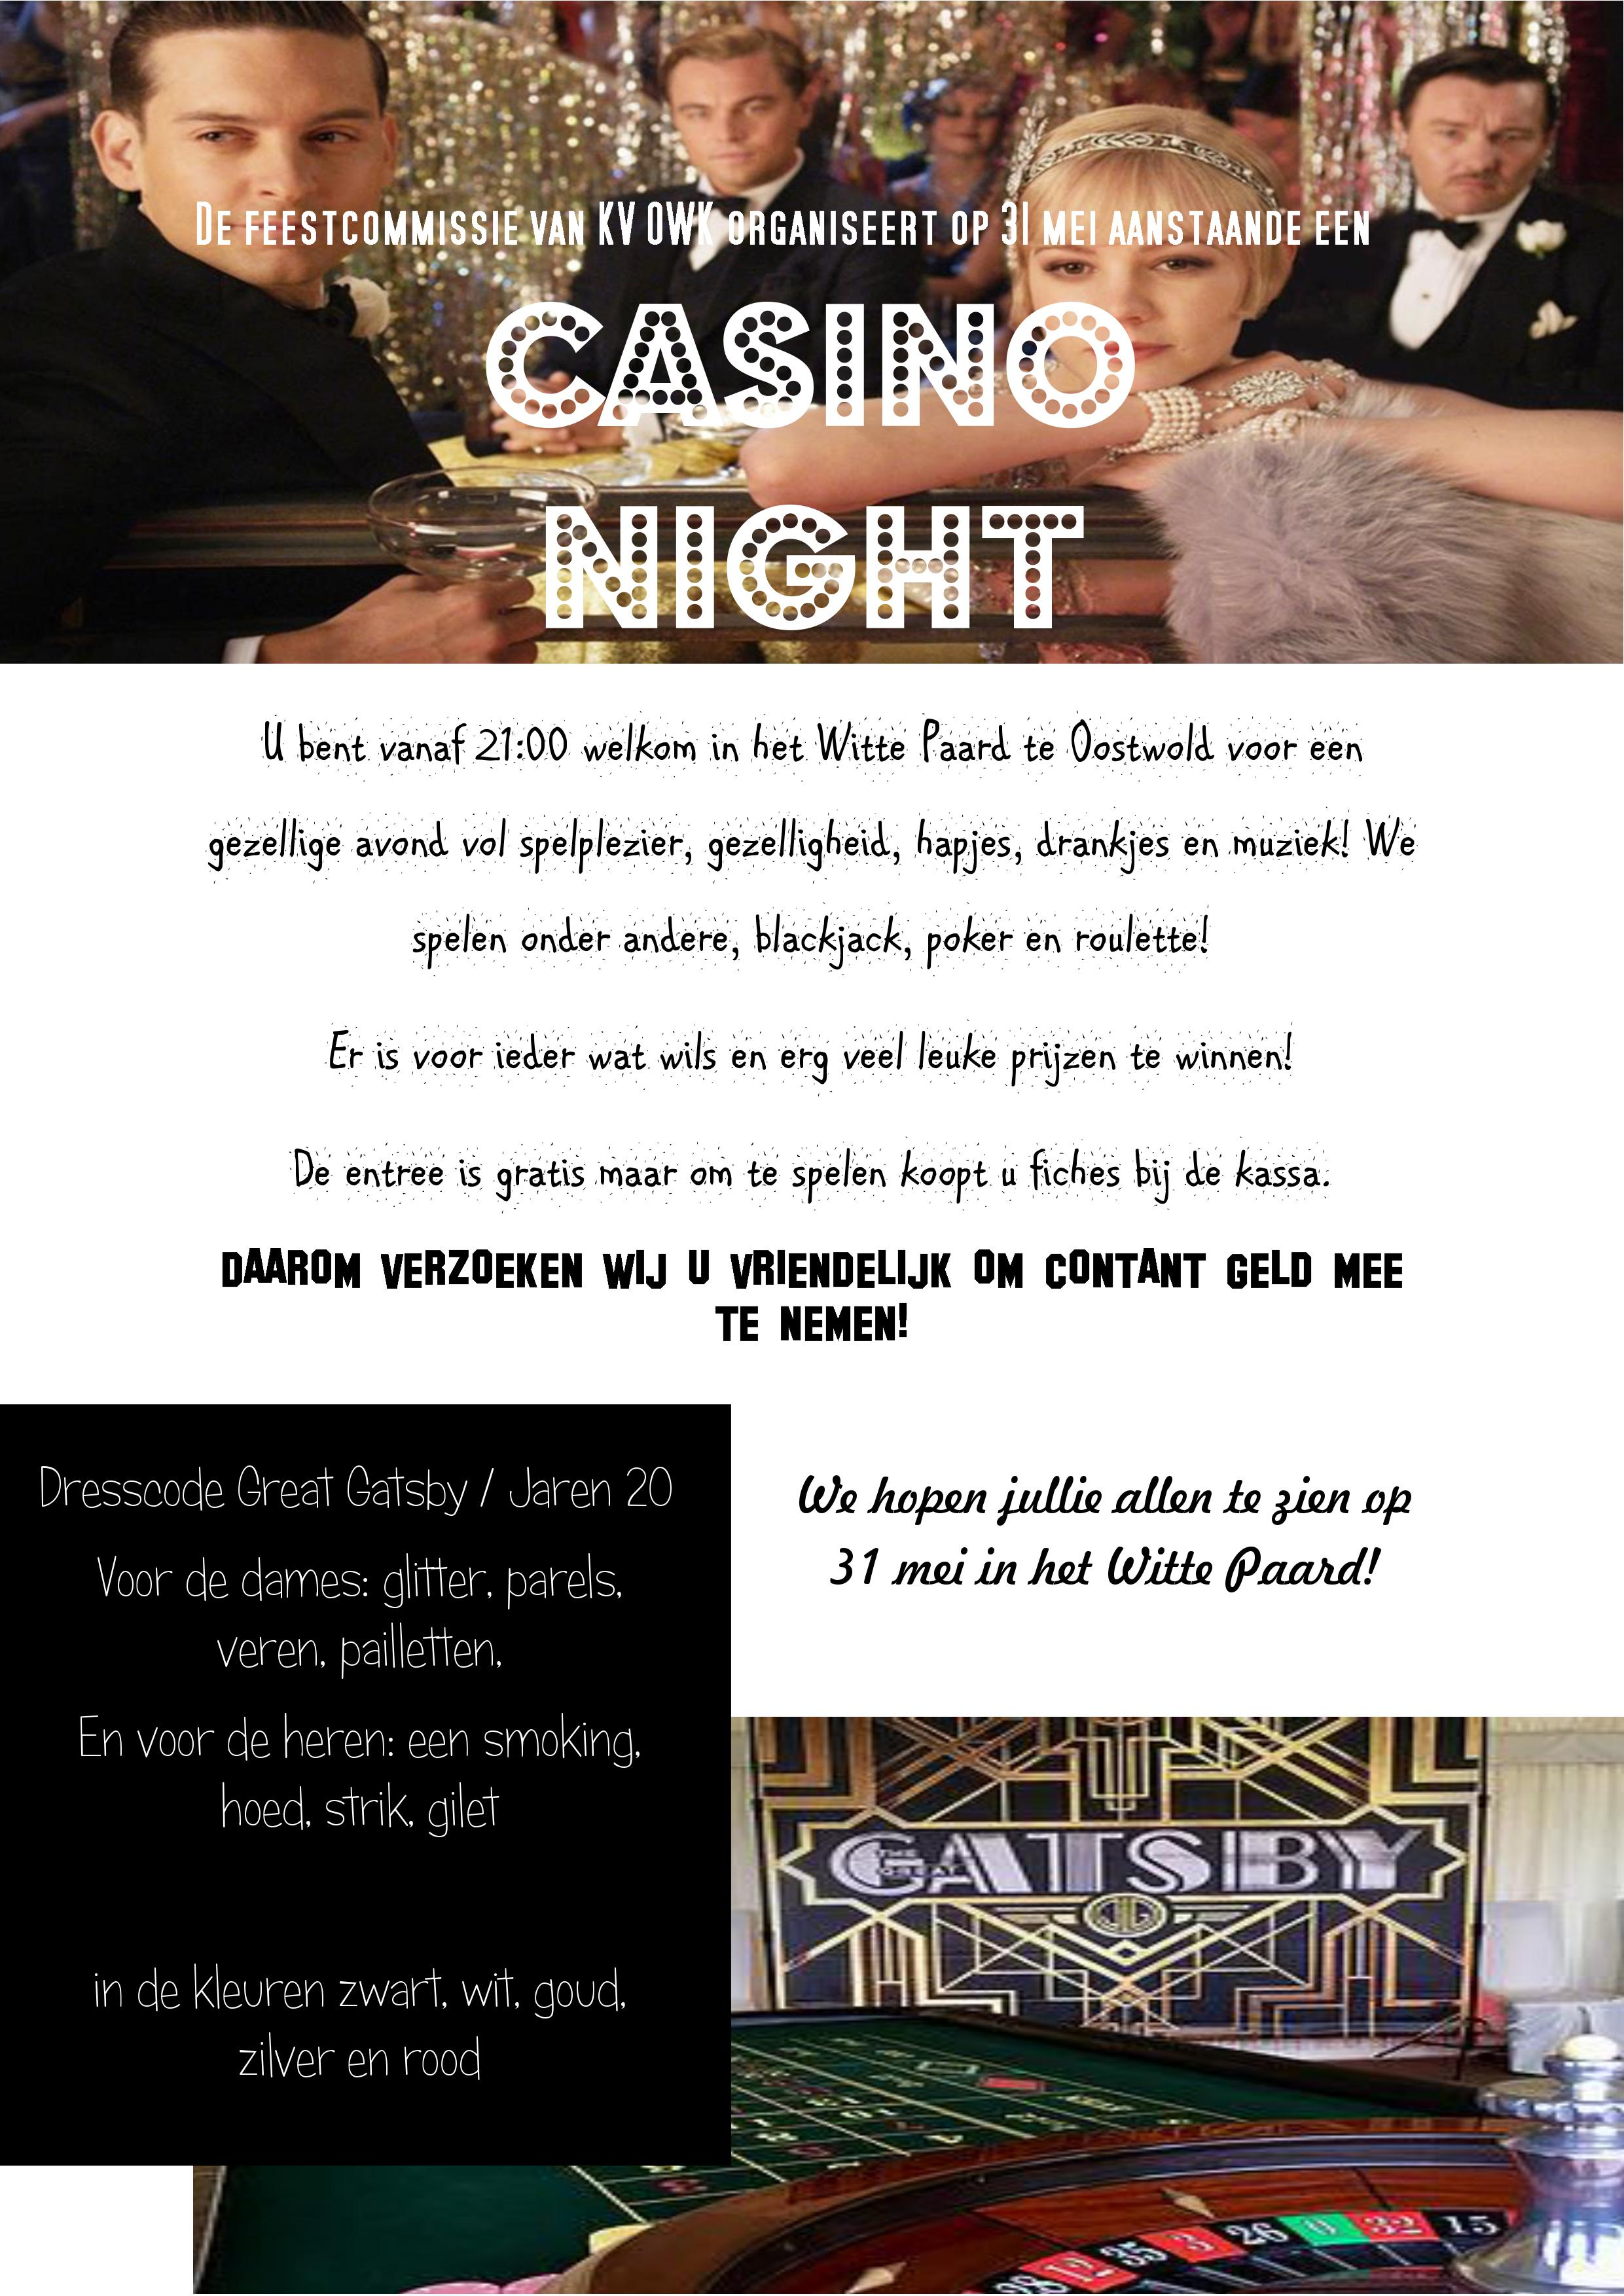 Uitnodiging Casino night